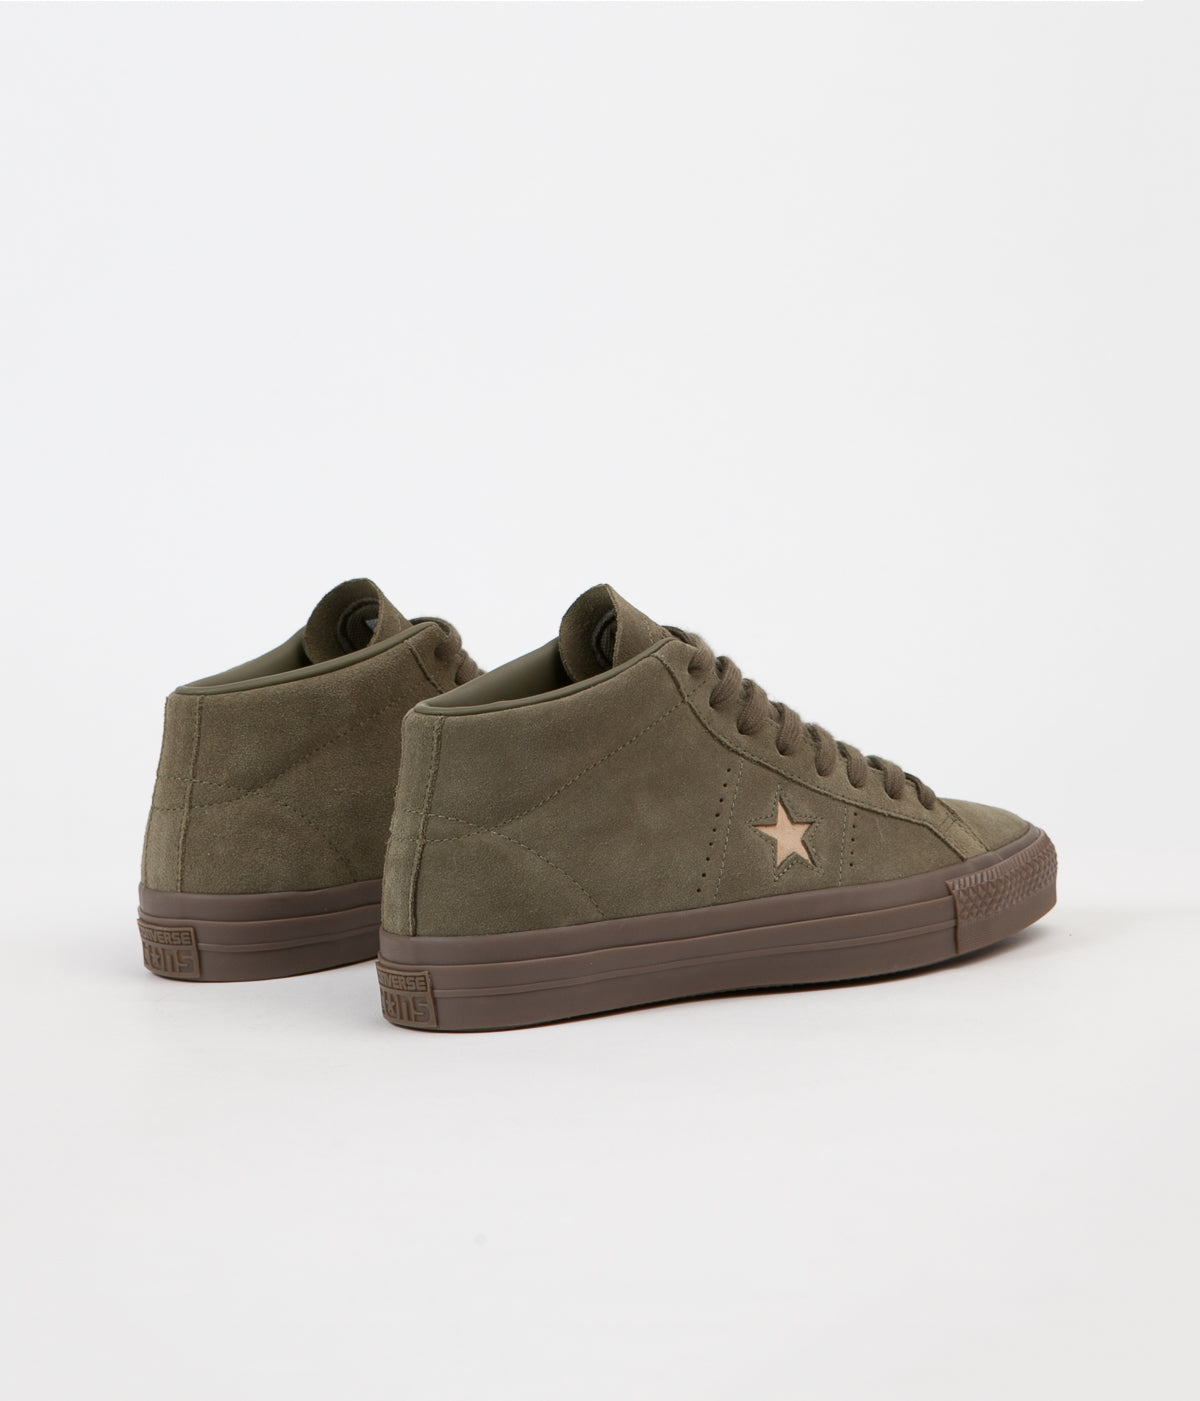 Converse One Star Pro Mid Shoes - Medium Olive / Light Fawn